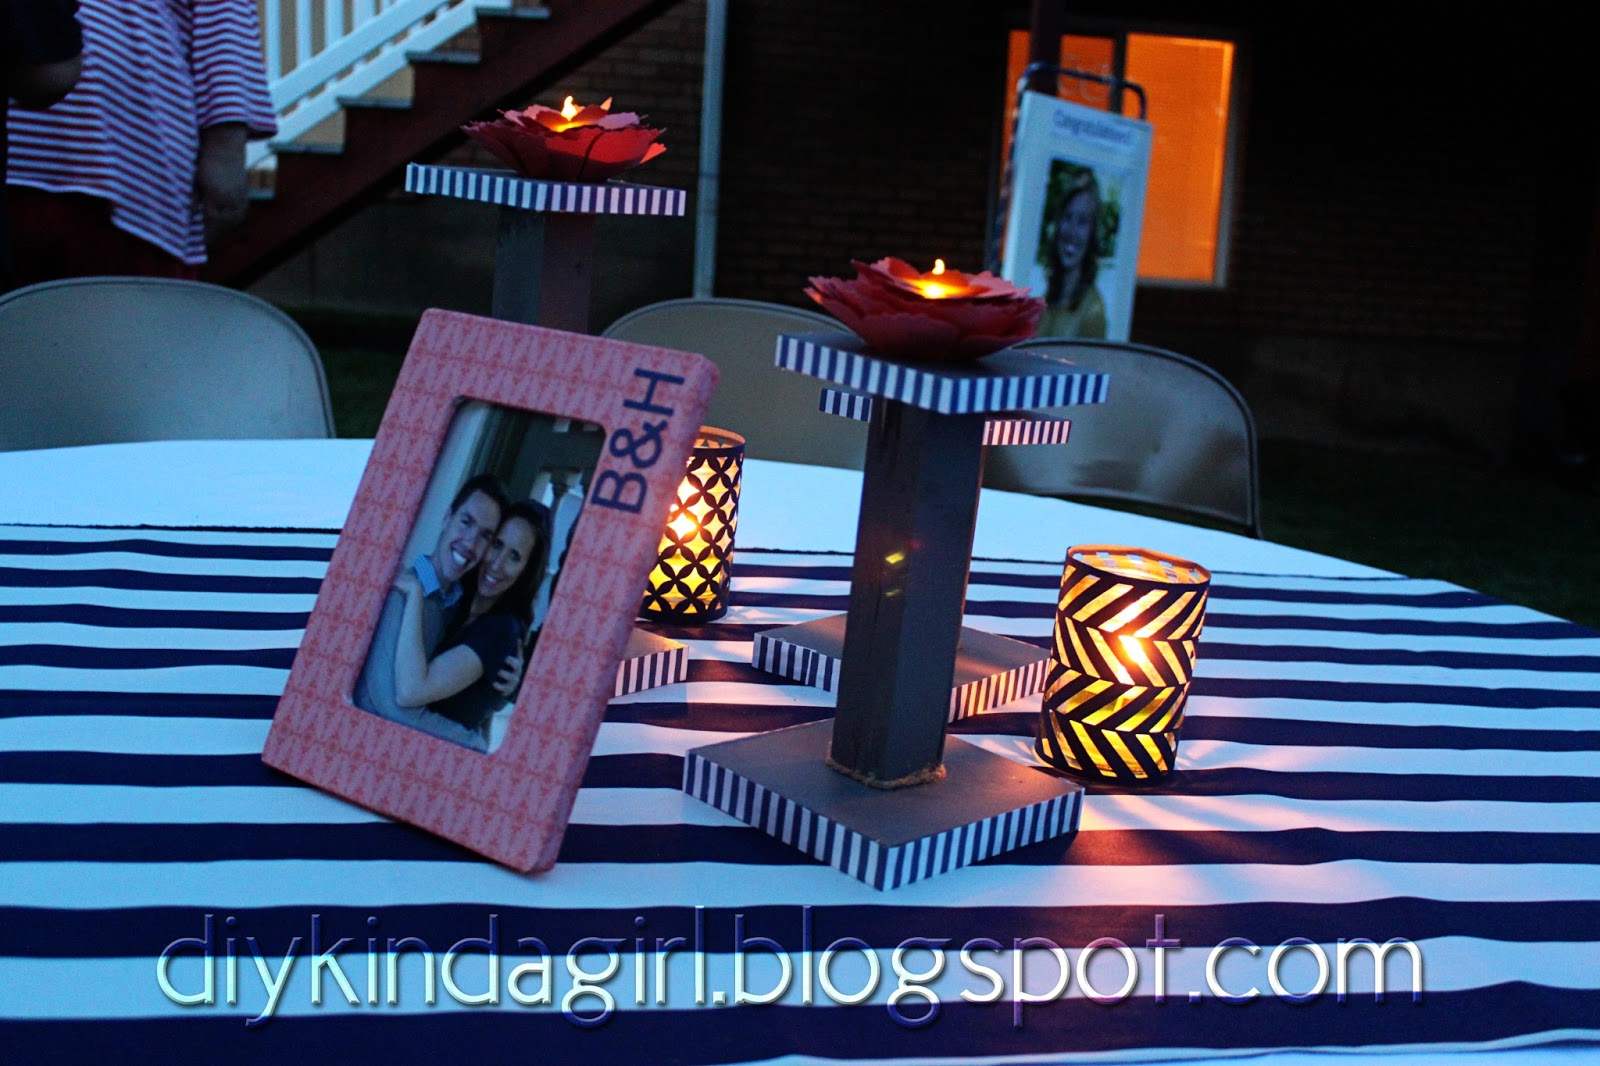 Candles Mason Jars And Tealights Already Had From Last Wedding 0 45 Each For Cutout Cover 7 20 Total Patterned Paper Frame 71 5 68